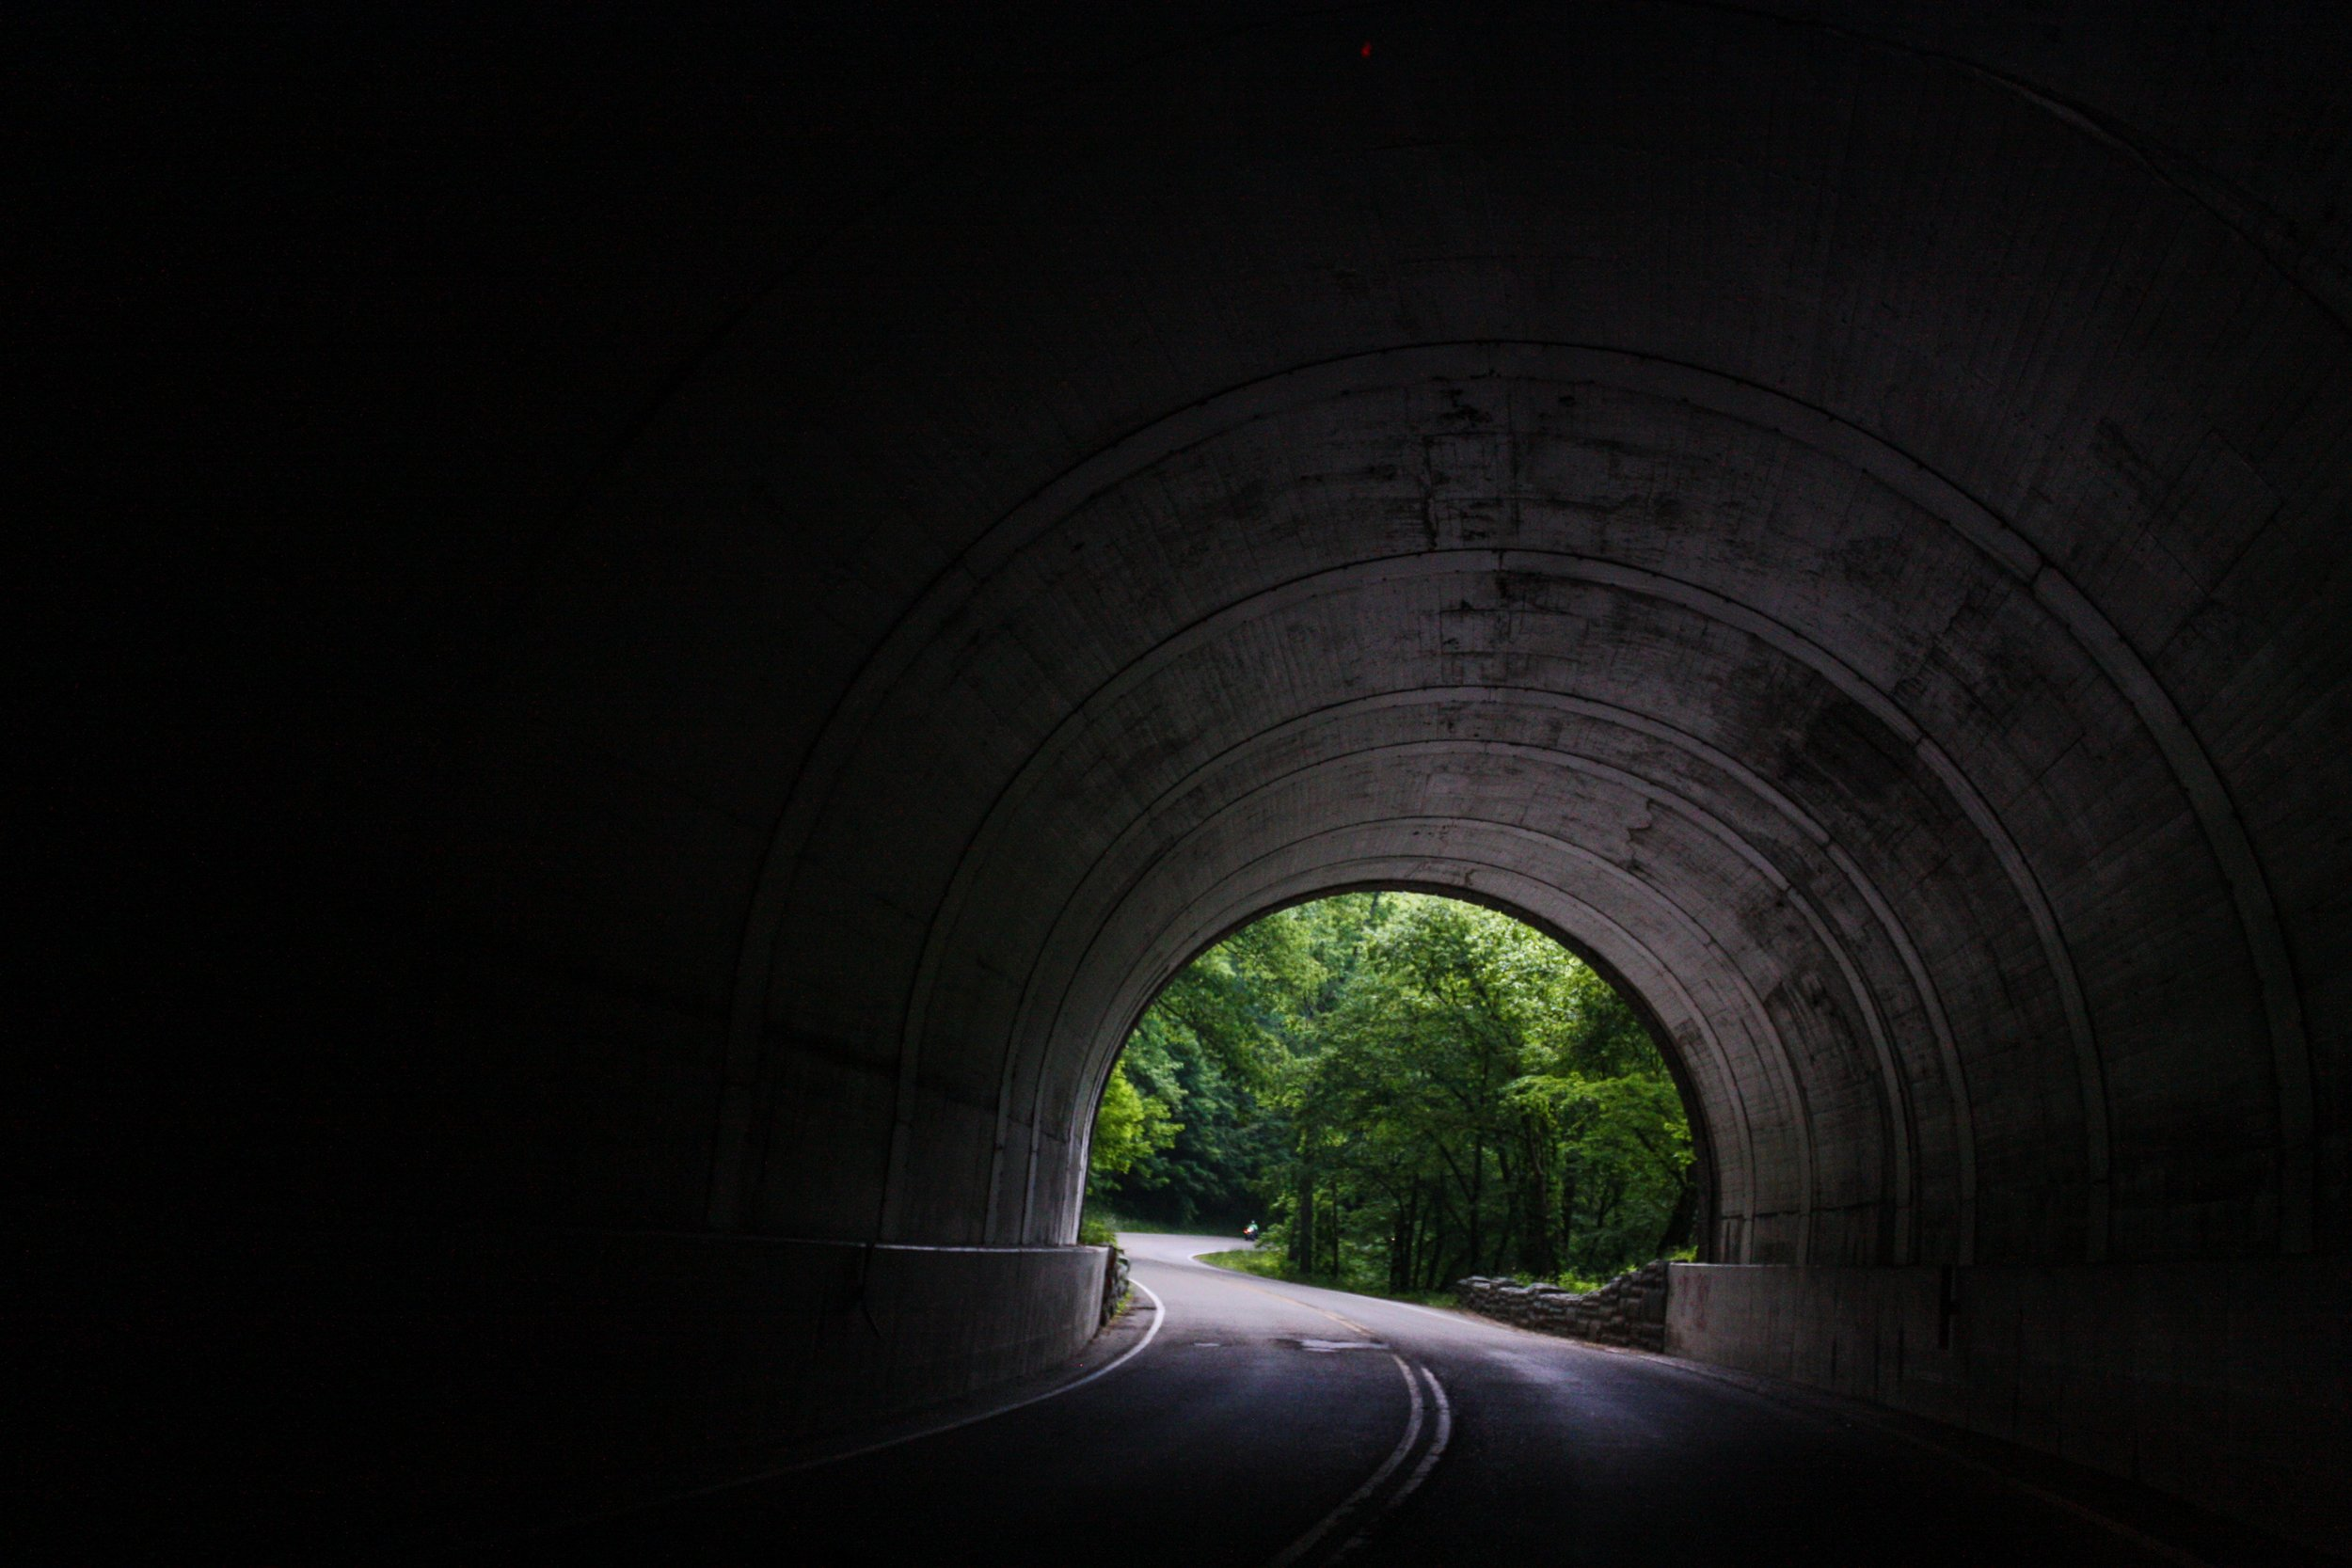 The  fight-or-flight response  can cause tunnel vision to boost your focus on what you need to do to survive.